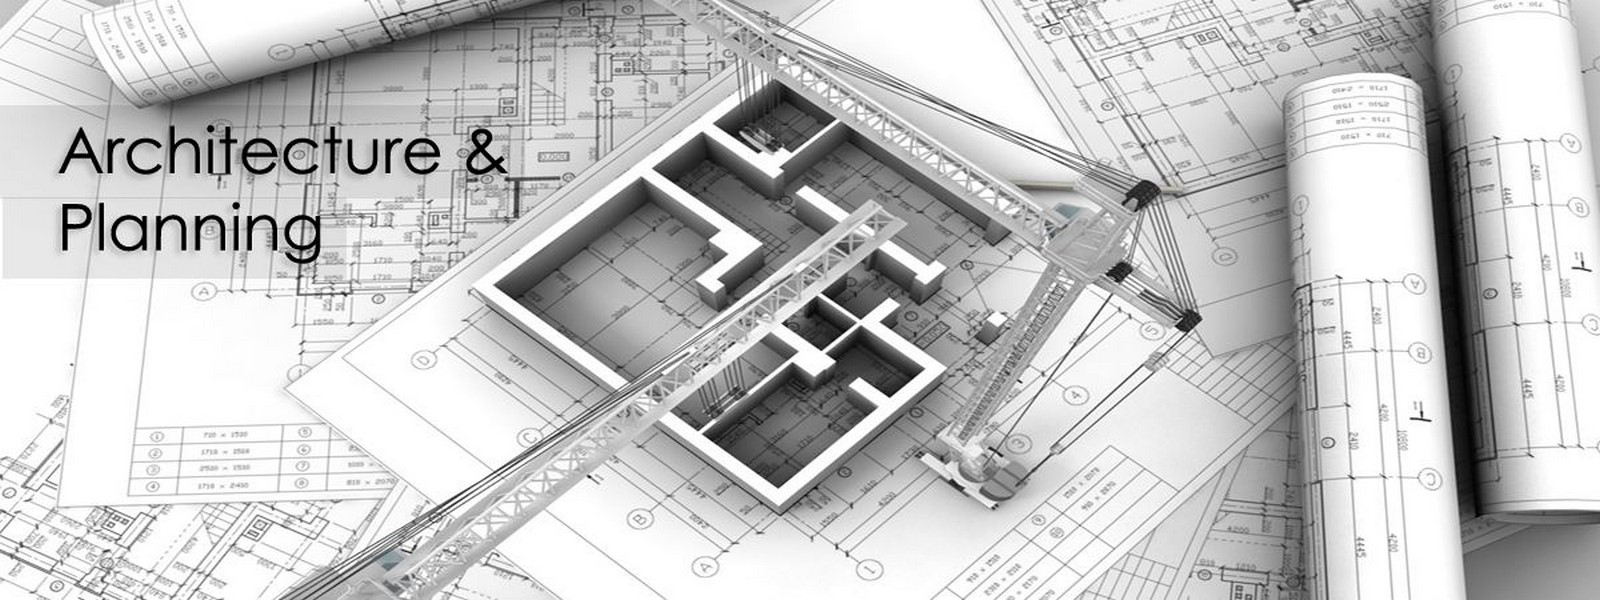 Campus Life at IIT Roorkee- Department of Architecture and Planning - Sheet5